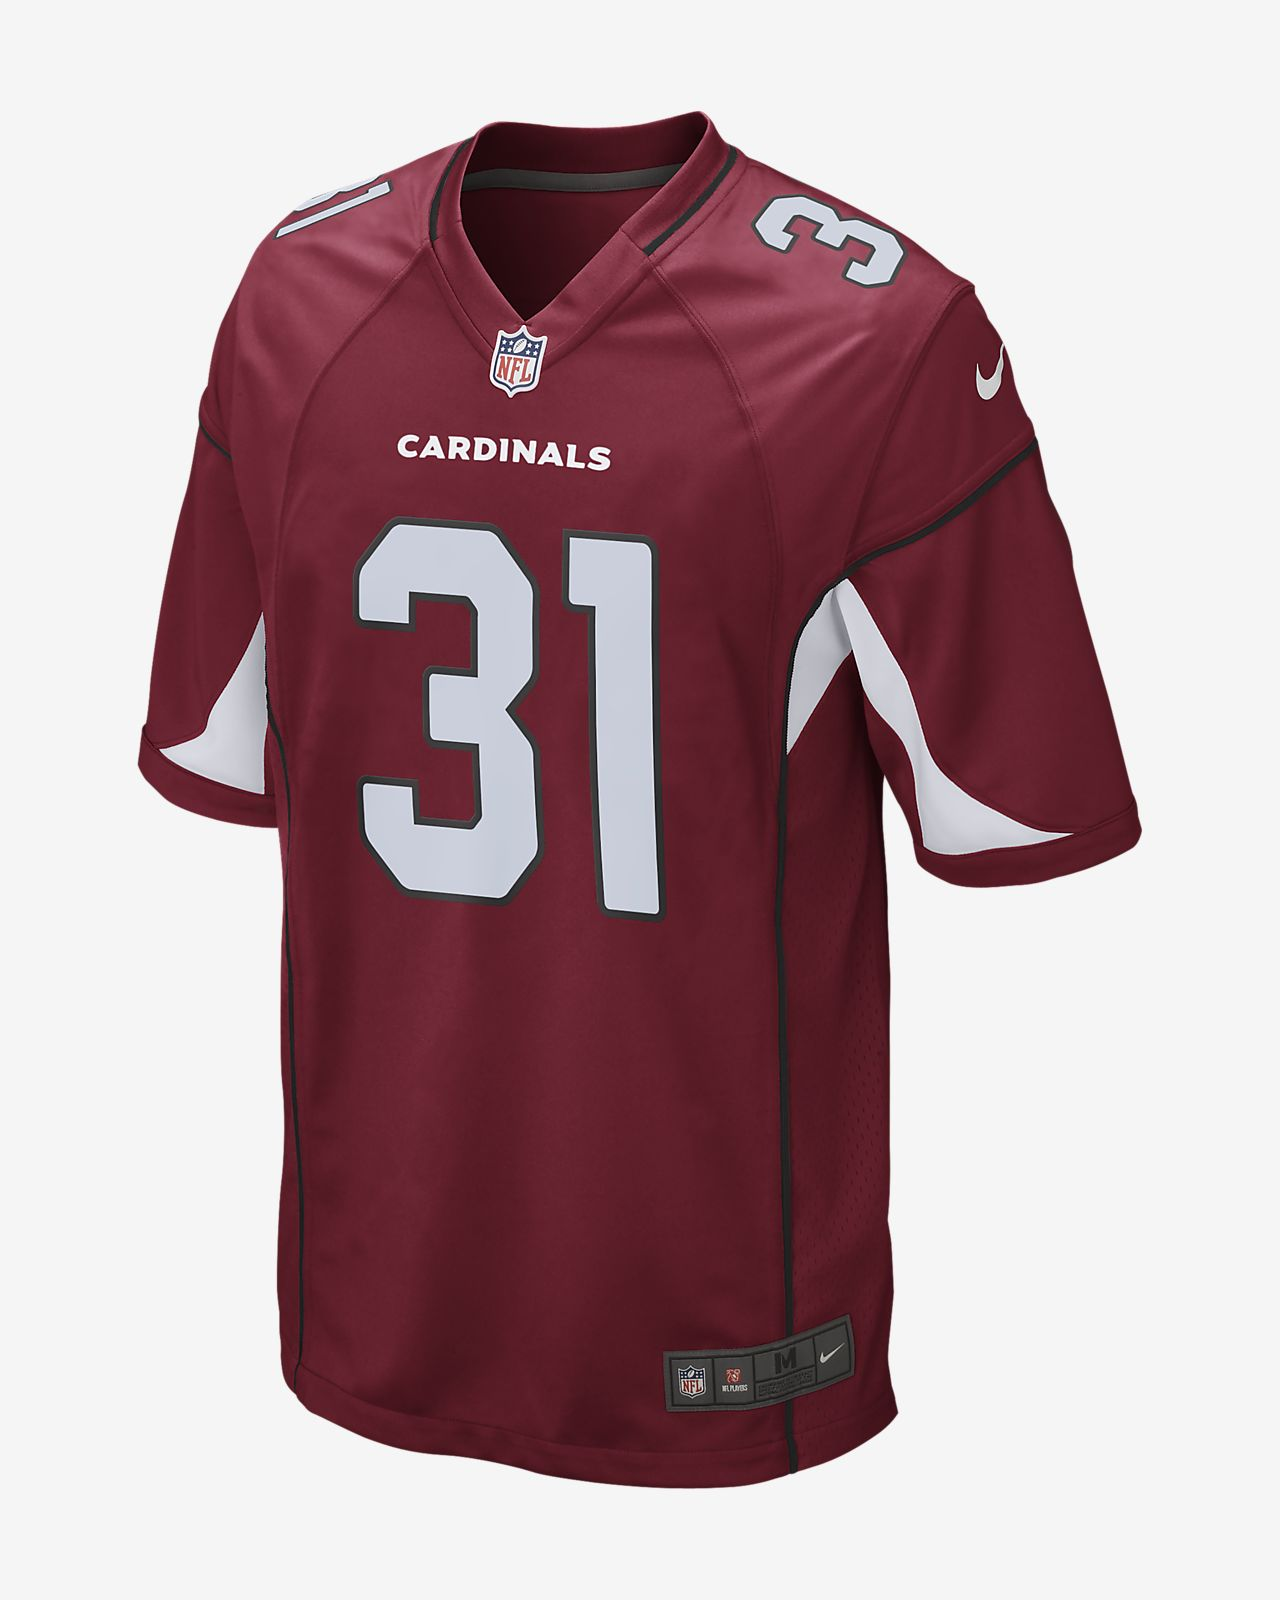 Maillot de football américain NFL Arizona Cardinals (David Johnson) pour Homme